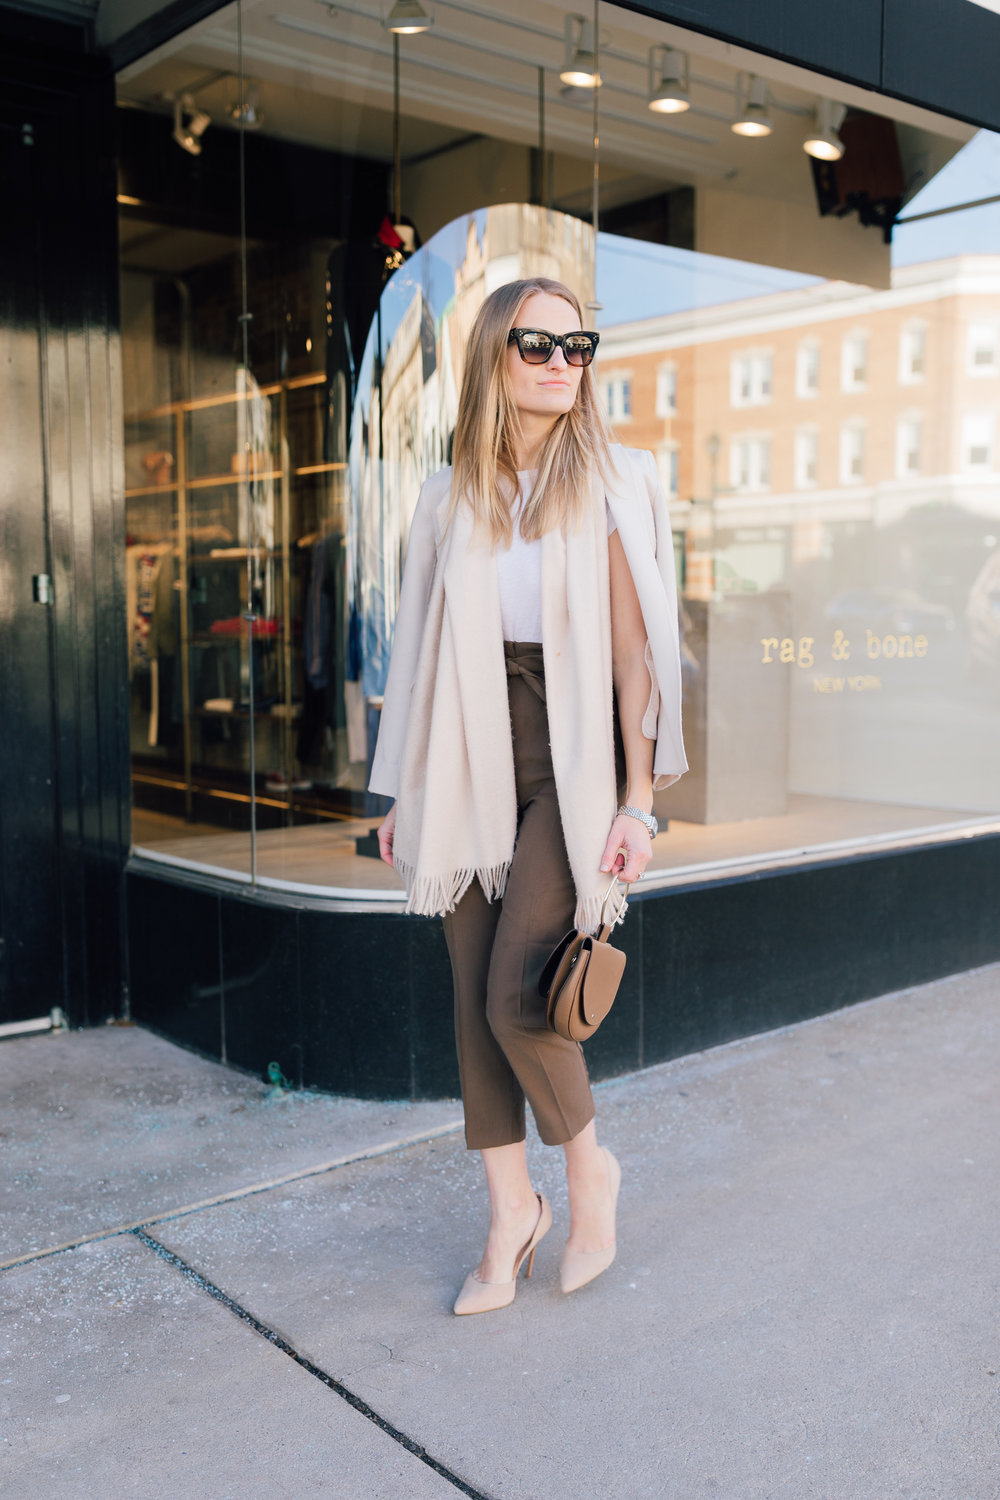 Stephanie Trotta of The Girl Guide wearing a paper bag pant street style for work wear with a neutral blazer and scarf and wearing Celine sunglasses